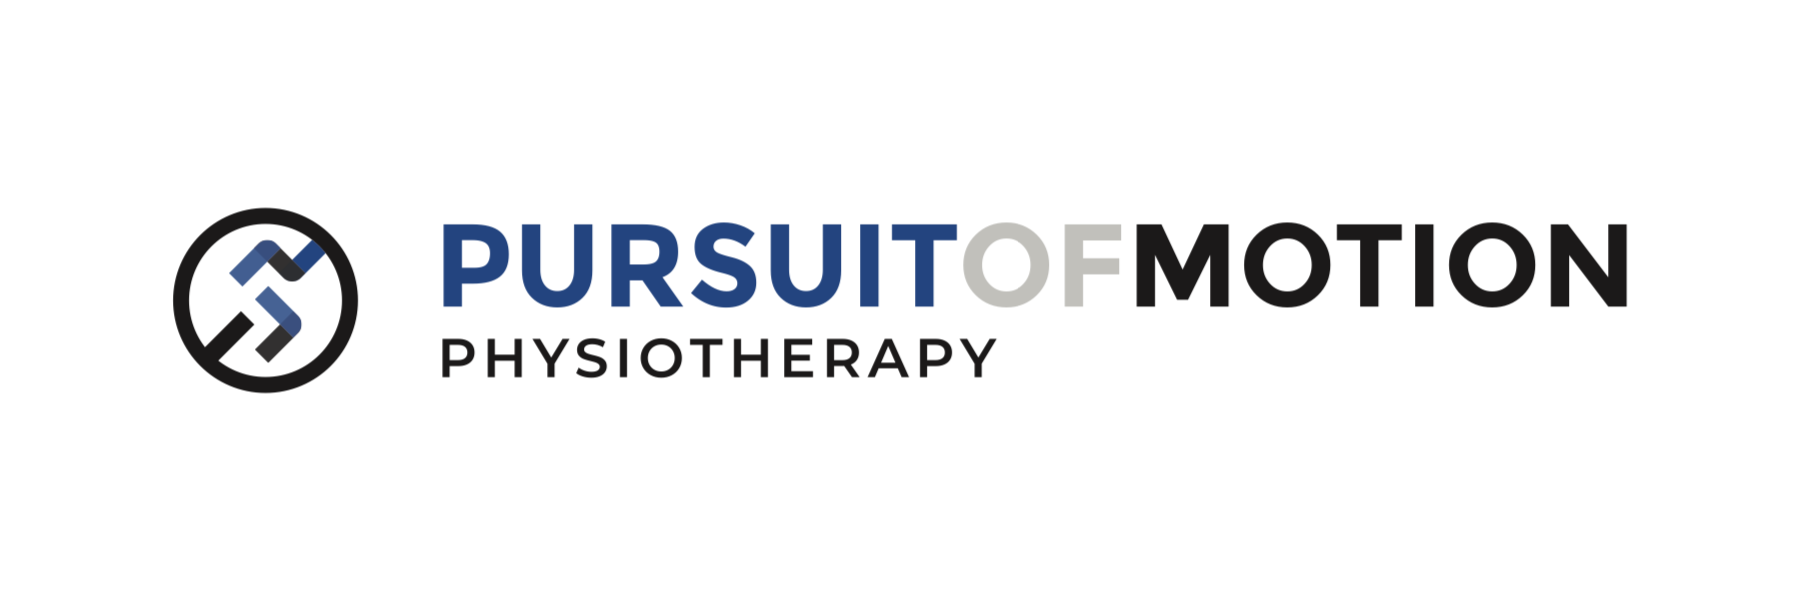 Pursuit Of Motion Physiotherapy